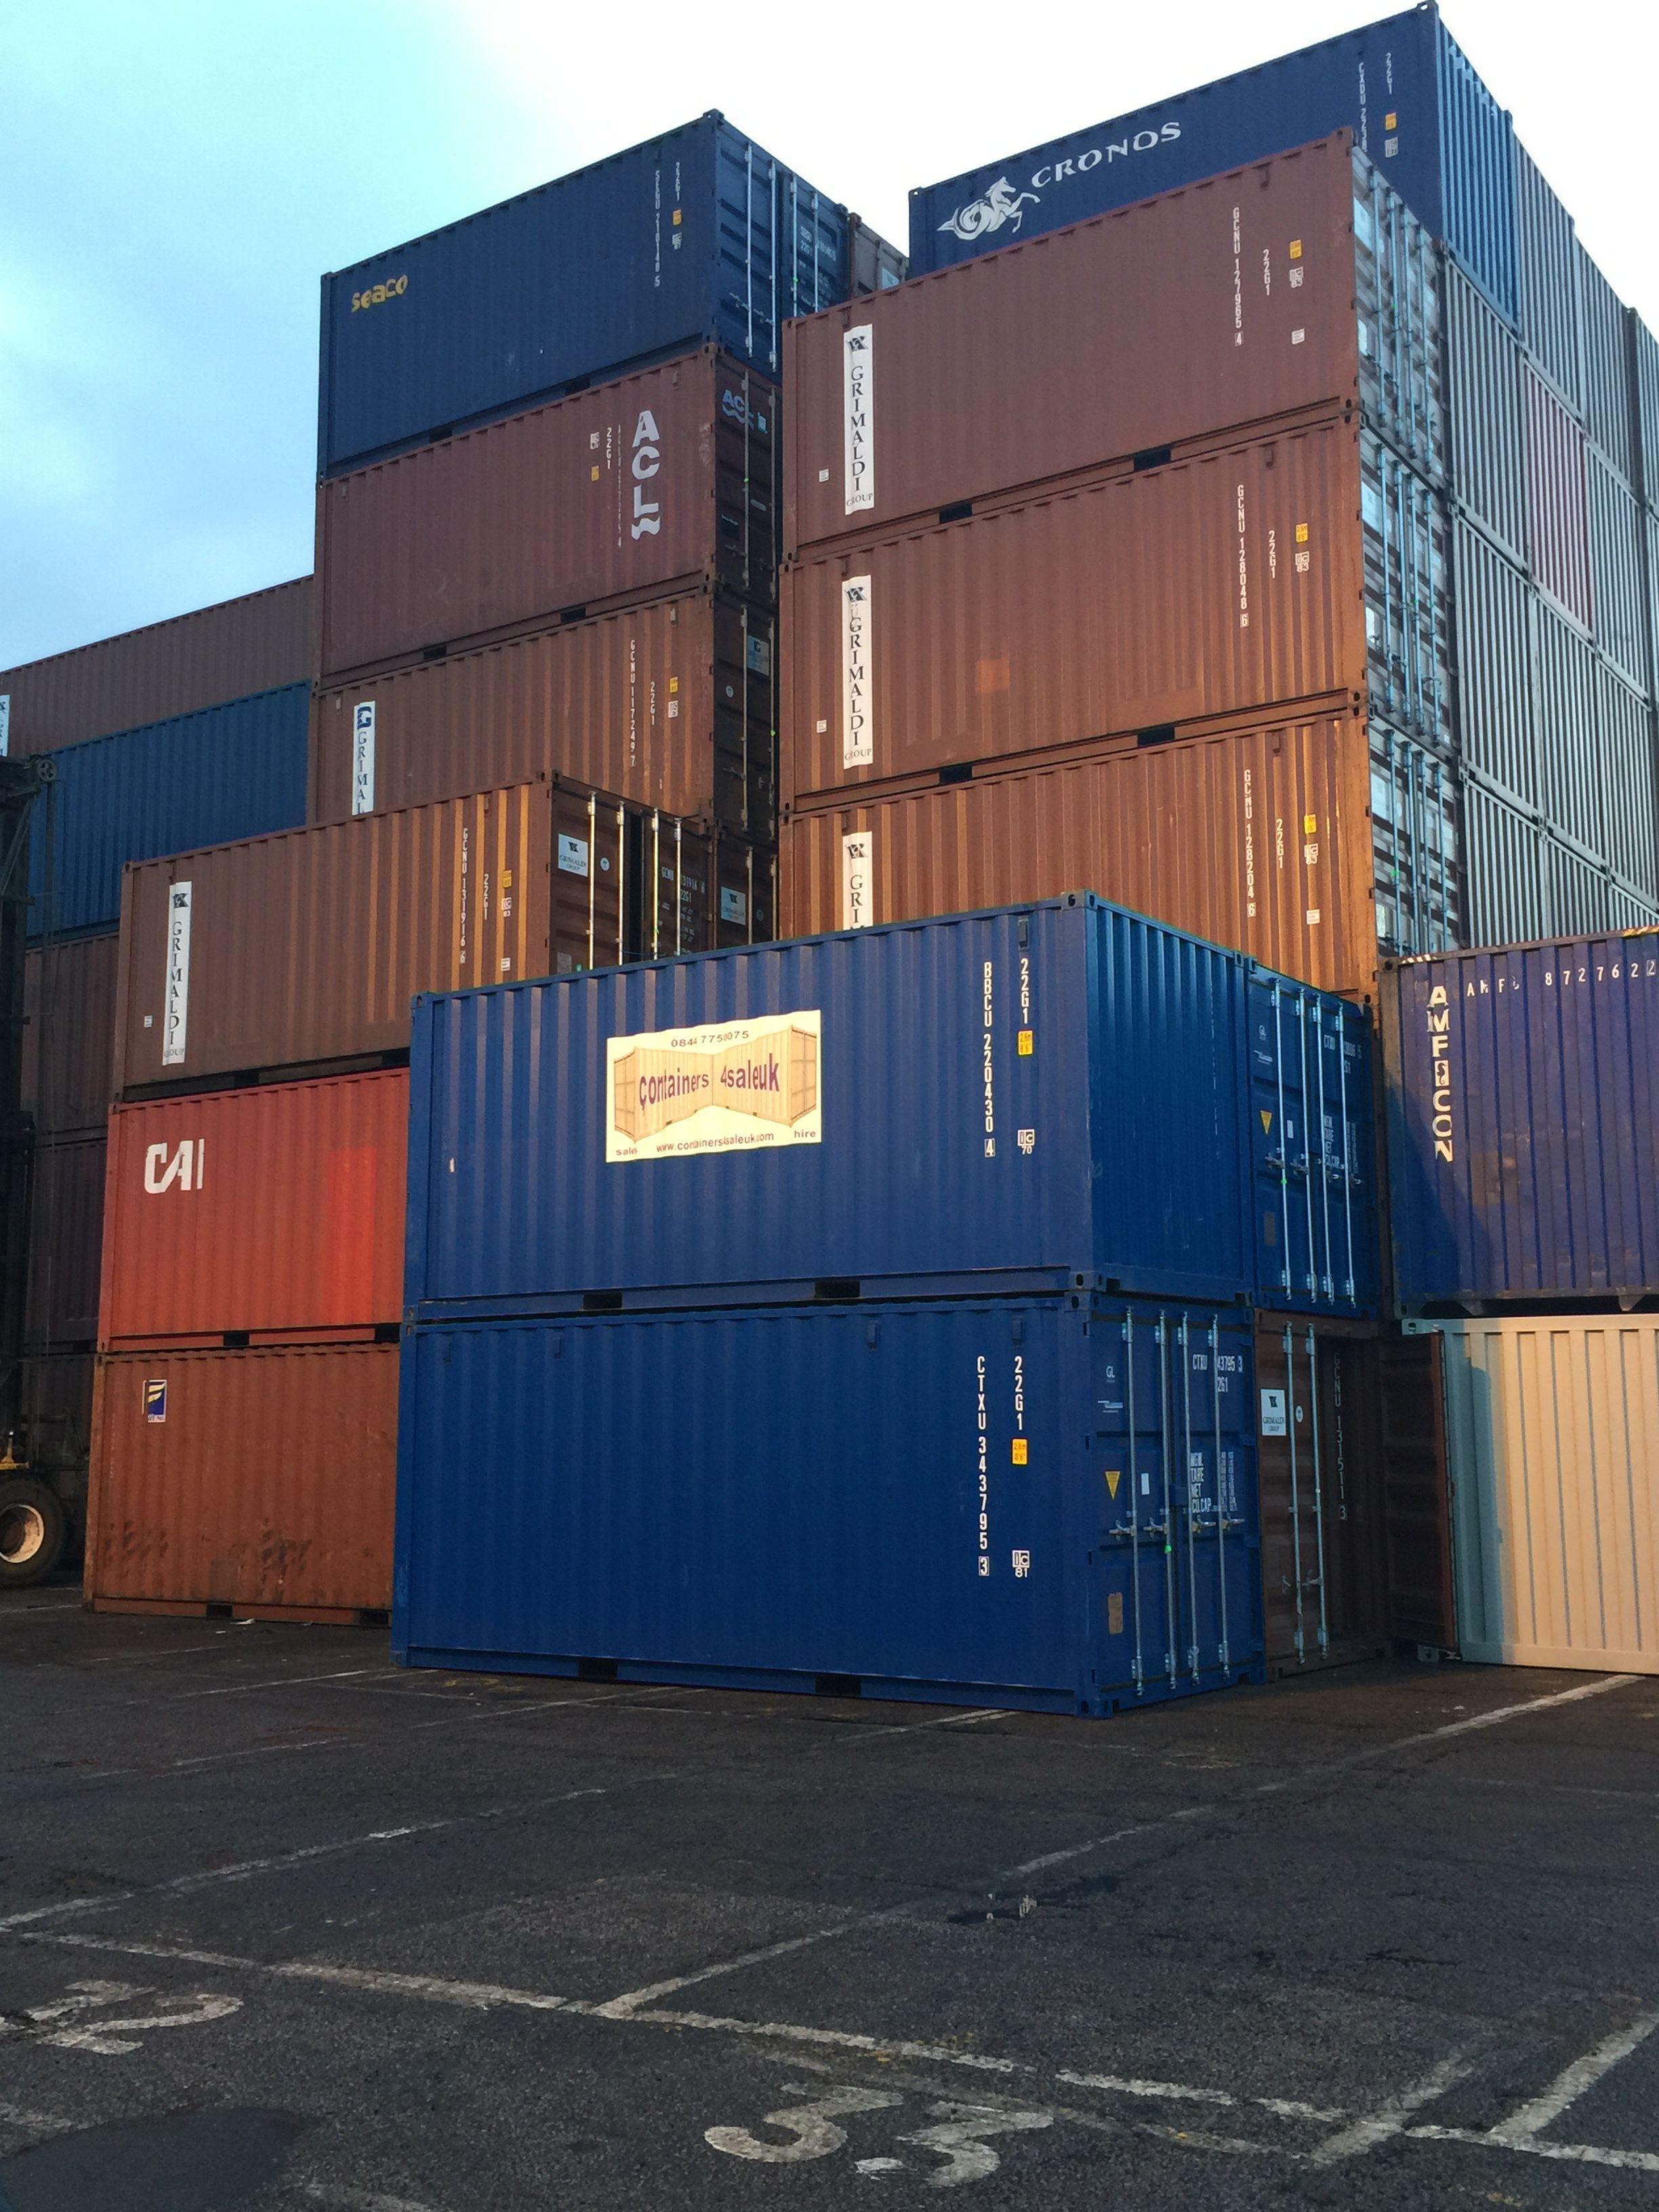 We Have 20ft One Way Shipped Storage Shipping Containers Ready And Available For Purchase Now Shipping Container Containers For Sale Used Containers For Sale